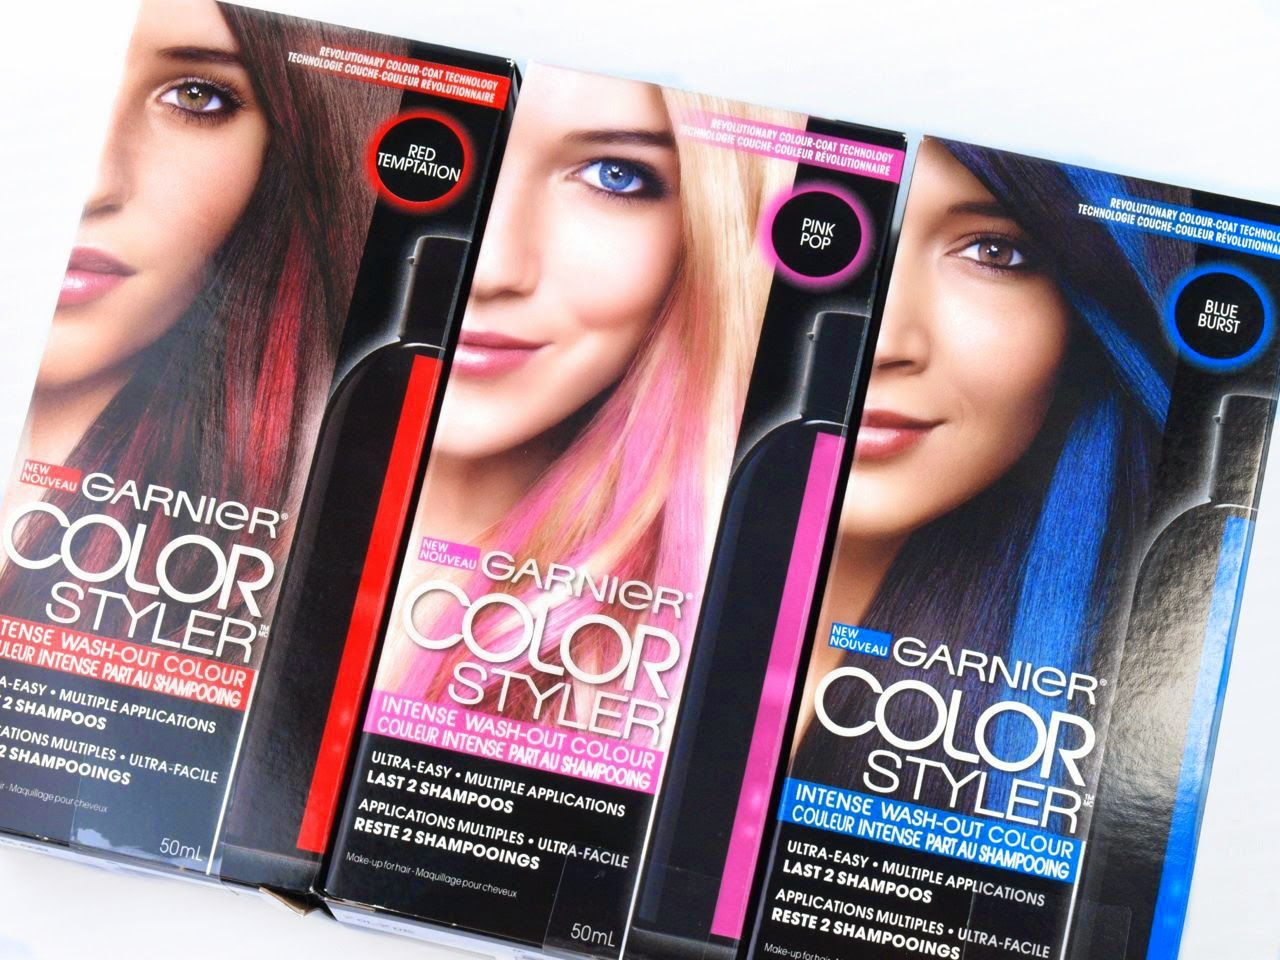 Garnier Color Styler Intense Wash Out Color Review Hair Color